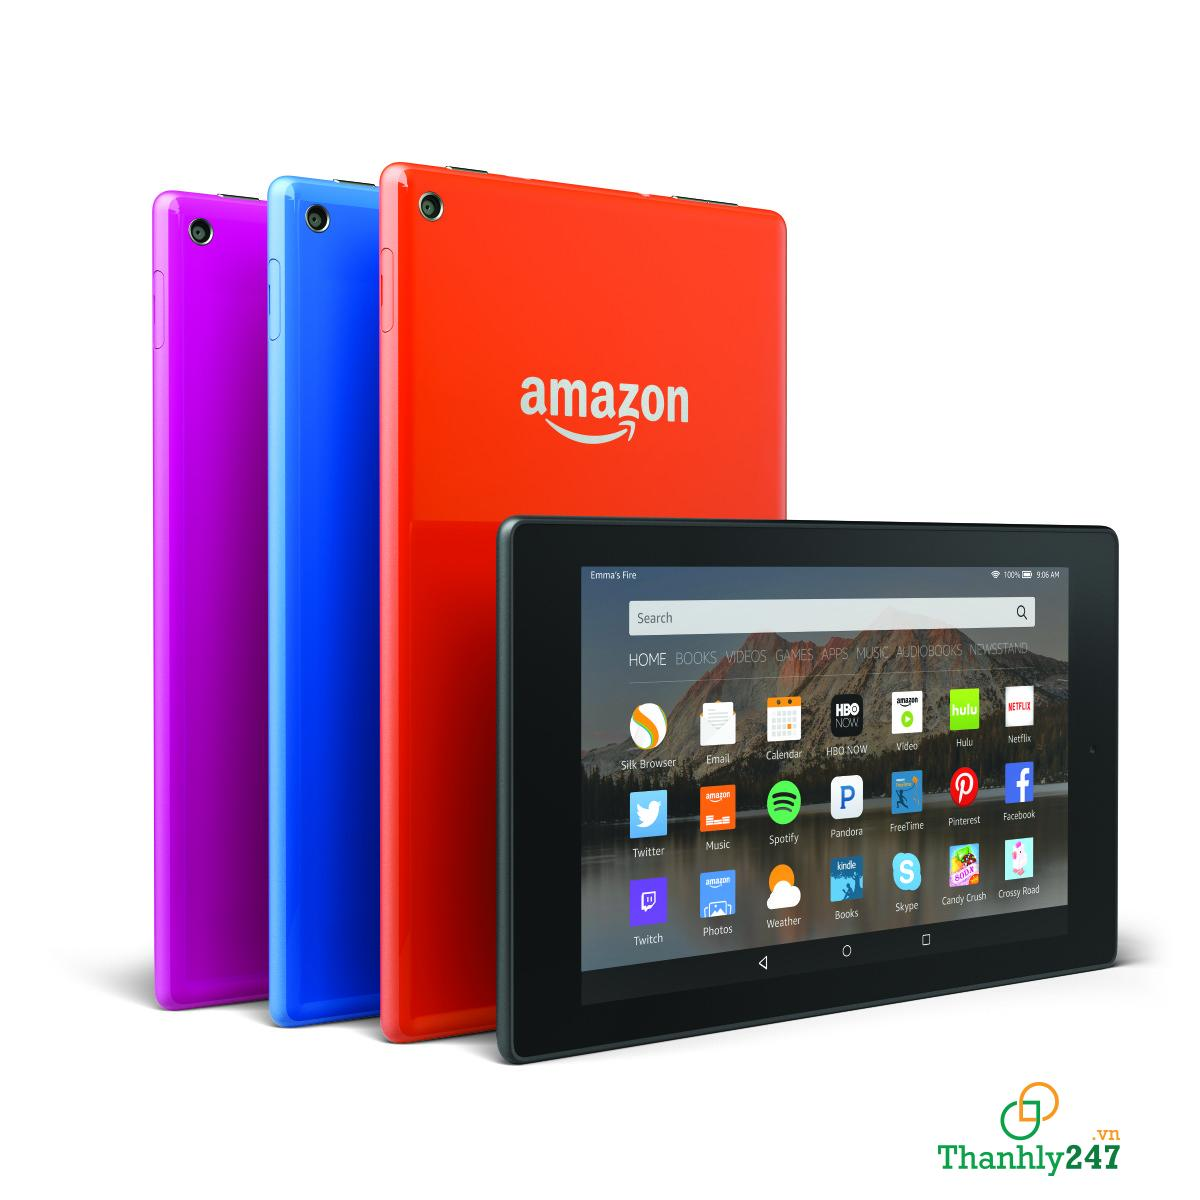 TOP 8: Amazon Fire HD 8